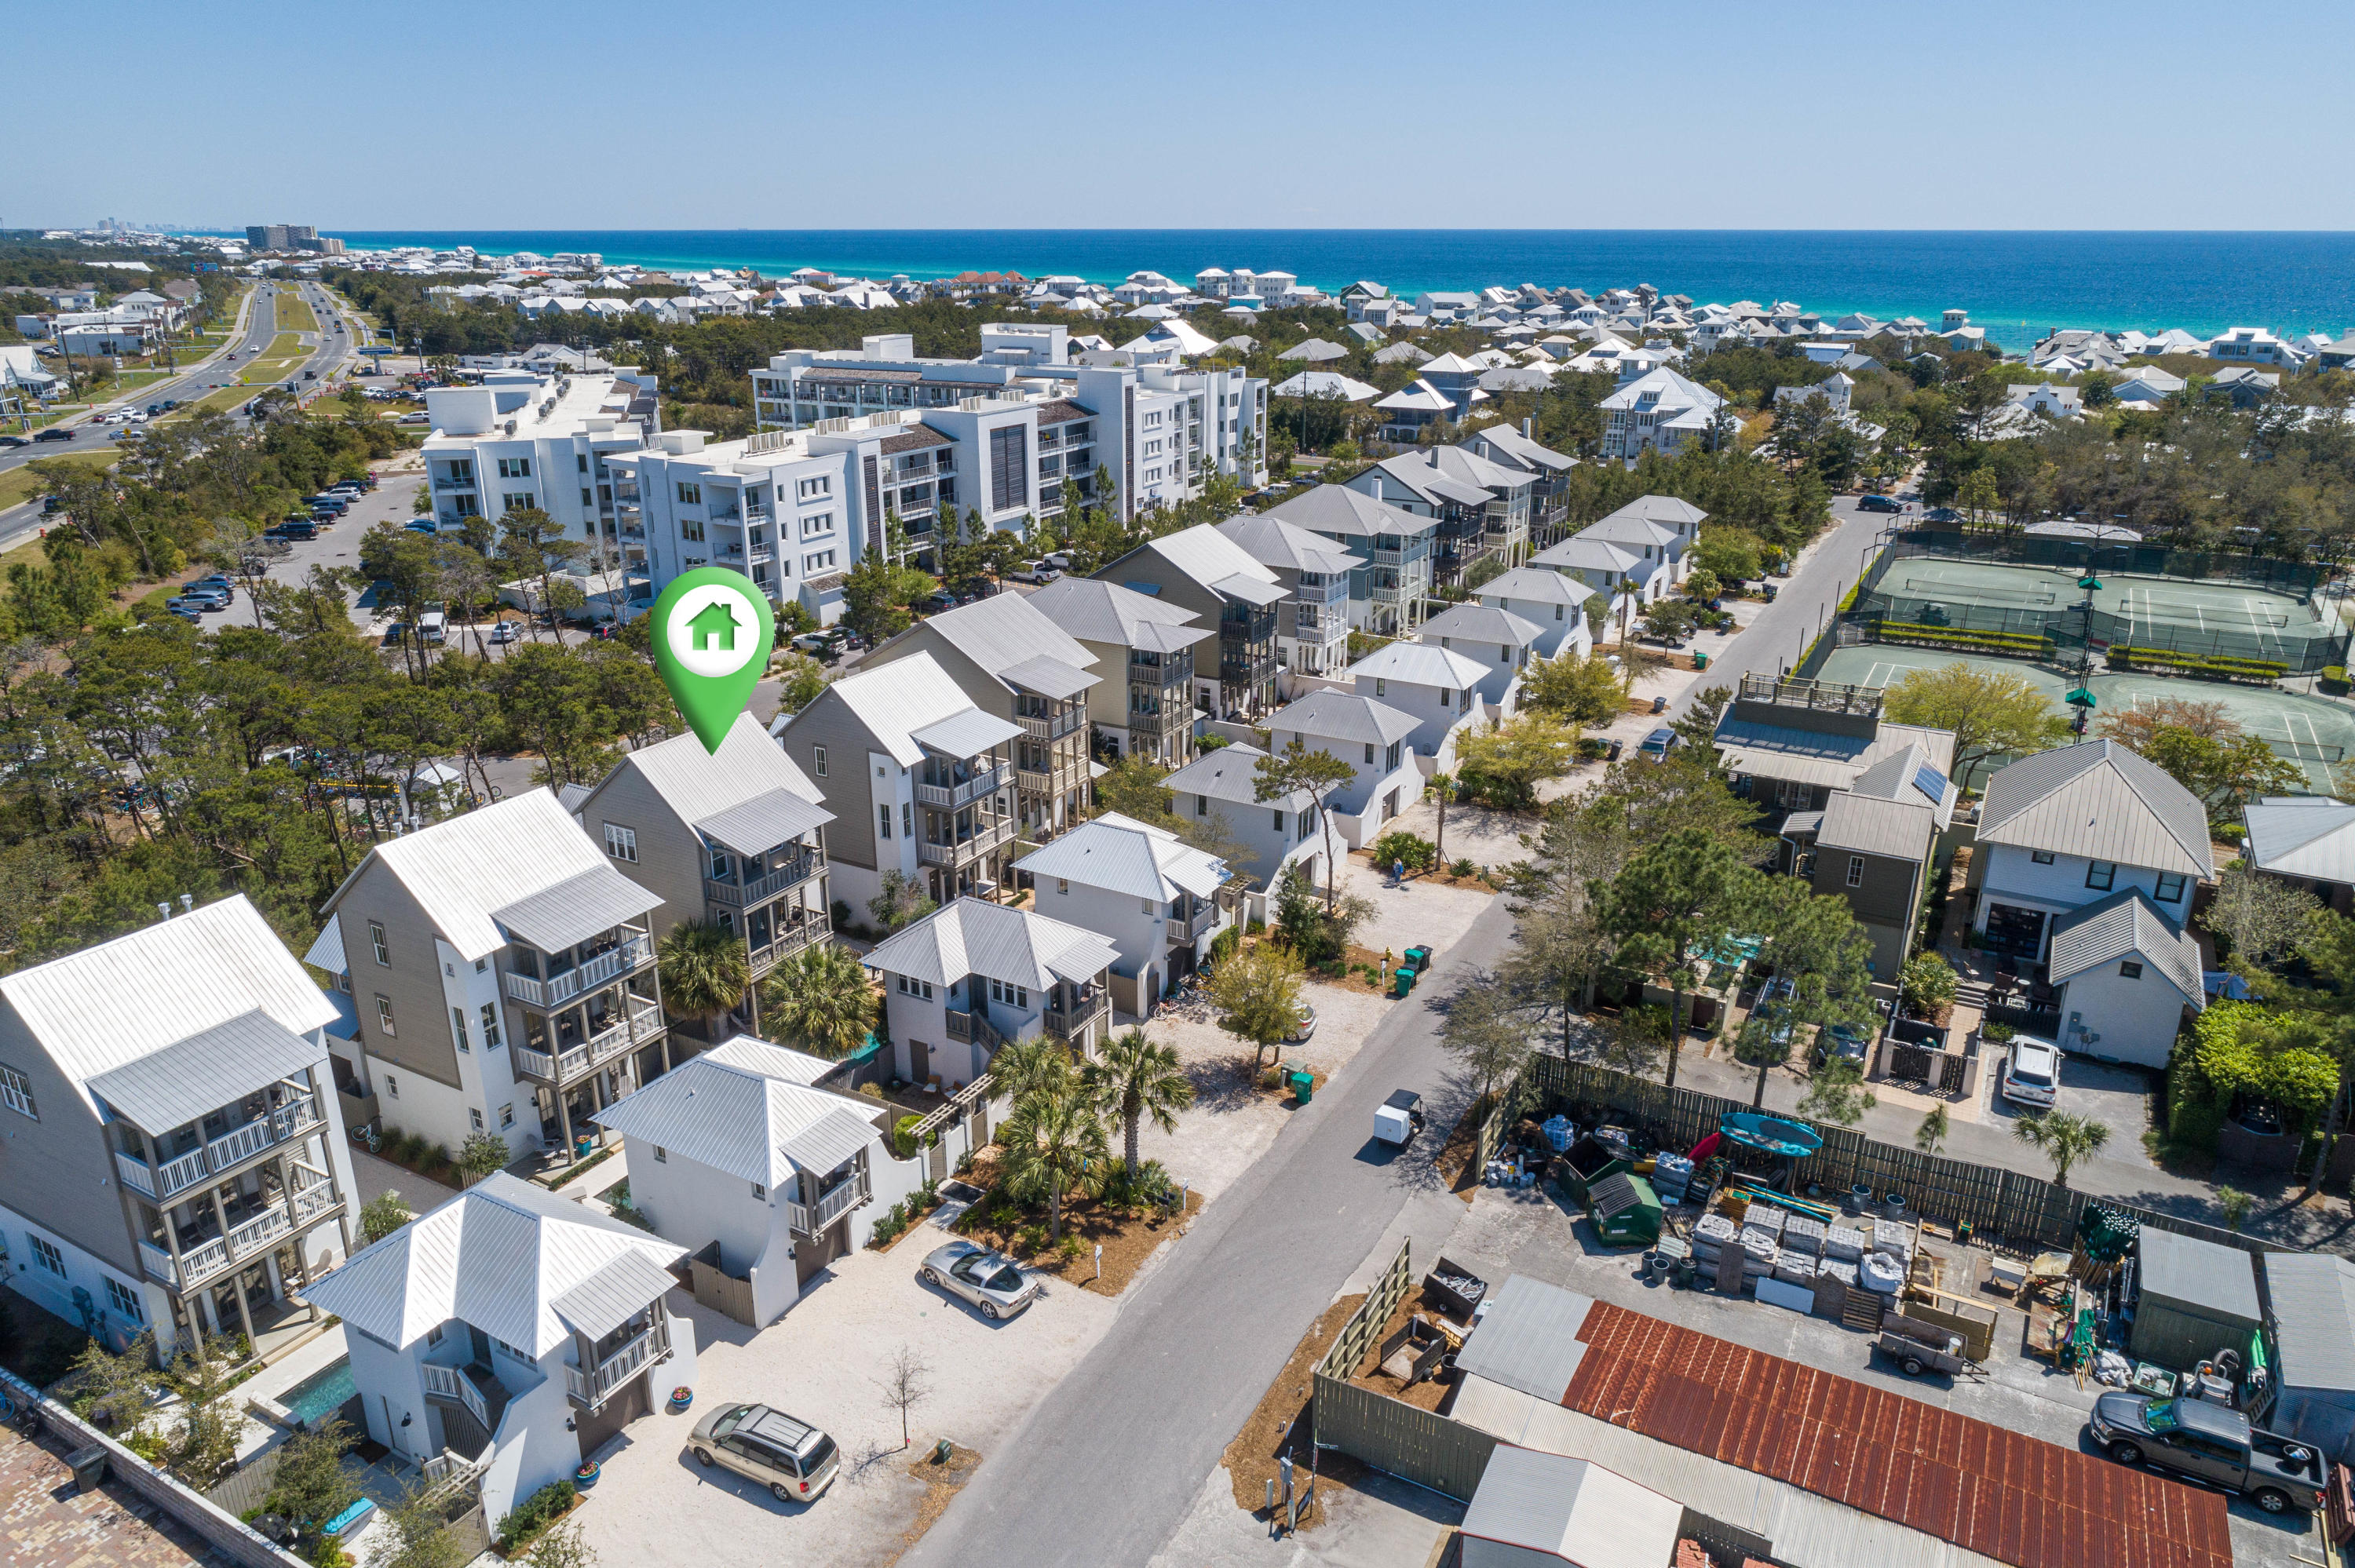 *Virtual tour available*Whether it's your second home, primary home, or an investment, you'll be amazed by Villa St. Barth's on Winston Lane, just off of 30a and Hwy 98, directly next door to Rosemary Beach. The highly sought after location of this home means not only are you a short walk or bike ride to the beach and endless shopping and dining options, but you and your guests will also never have to drive through the traffic of 30A in peak seasons! Park your car and you can walk or bike to the upscale boutiques in Rosemary Beach, or the amazing restaurants of the shops at 30Avenue. This five-bedroom, 4.5-bathroom home sleeps up to 14 people, when the carriage house is included.  A private dipping pool and courtyard with grill and outdoor fireplace separate the main home and carriage house, which can be rented together or separately, maximizing your earnings potential.   An open-concept layout and coast contemporary decor make everyone feel like vacation has officially begun when you step inside. The first floor features a pull-out sofa, facing the fireplace, a modern kitchen with large farmhouse style table and bar seating so everyone can enjoy a meal together. Access to the pool and outdoor entertaining is just through the french doors off of the living area.   Upstairs, you'll find a balcony that overlooks Winston Lane and includes an additional seating area. There are also 2 guest rooms down the hall (both queen suites) and a bunk room. Bright pops of color and artwork are seen throughout the bedrooms, which have their own bathrooms. The bunk room features two twin-over-twin bunk beds. The third floor contains a primary suite featuring a king bed and en-suite bathroom. The private balcony in the bedroom is the perfect place to sip coffee in the morning. All bedrooms have their own flat screen TVs.  The carriage house has its own queen bed, sleeper sofa, private bathroom and kitchenette. This is all on top of the two-car garage.   Sold completely furnished and w